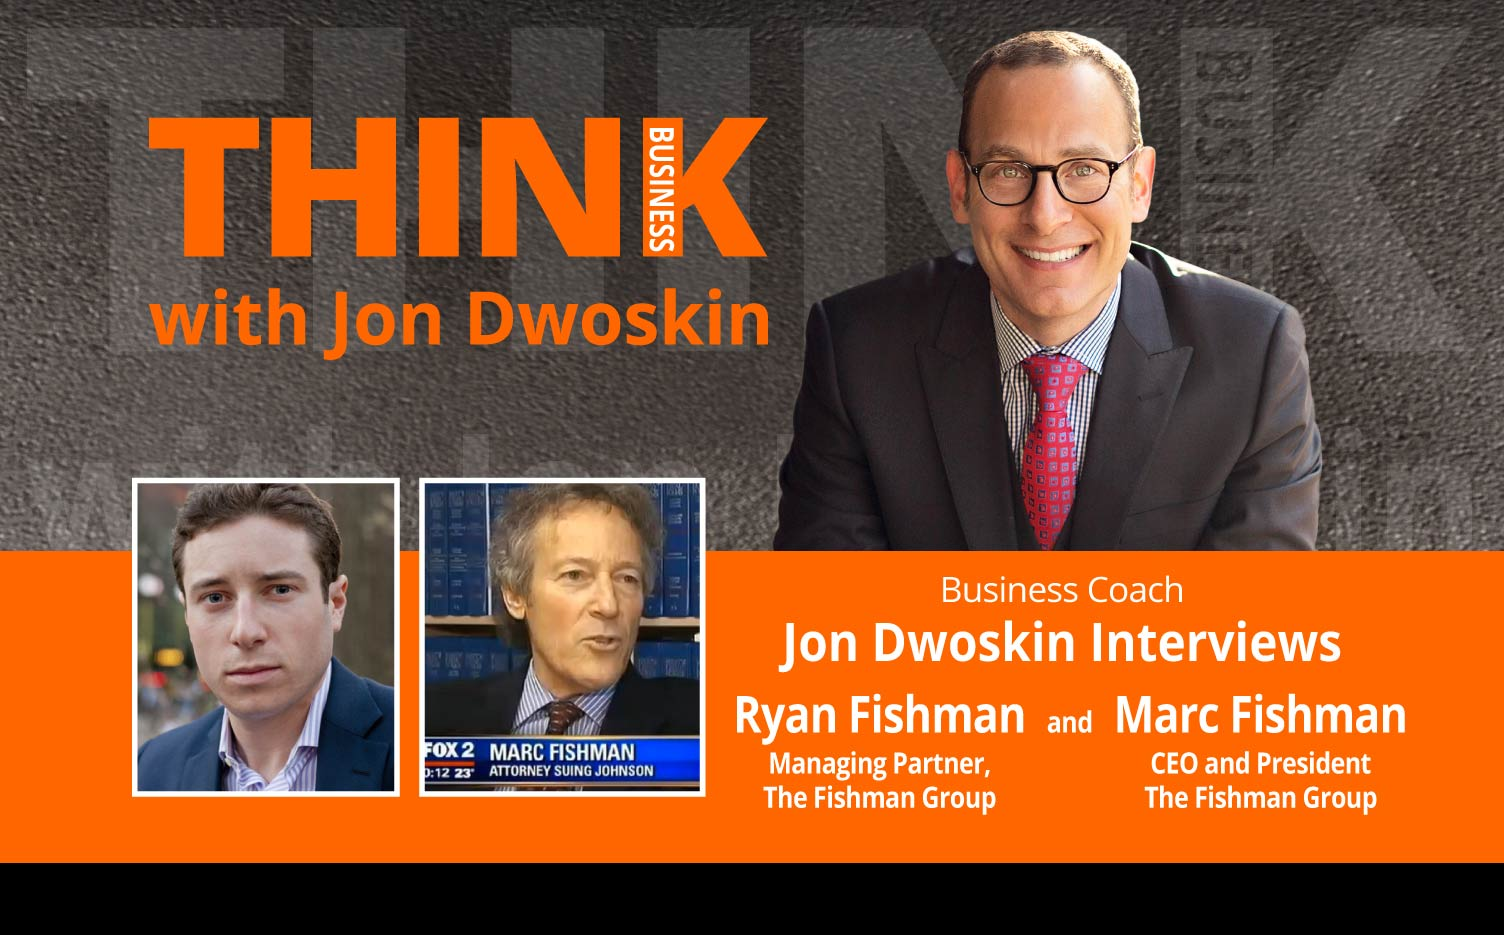 THINK Business Podcast: Jon Dwoskin Interviews Ryan Fishman, Managing Partner and Marc Fishman, CEO and President of The Fishman Group